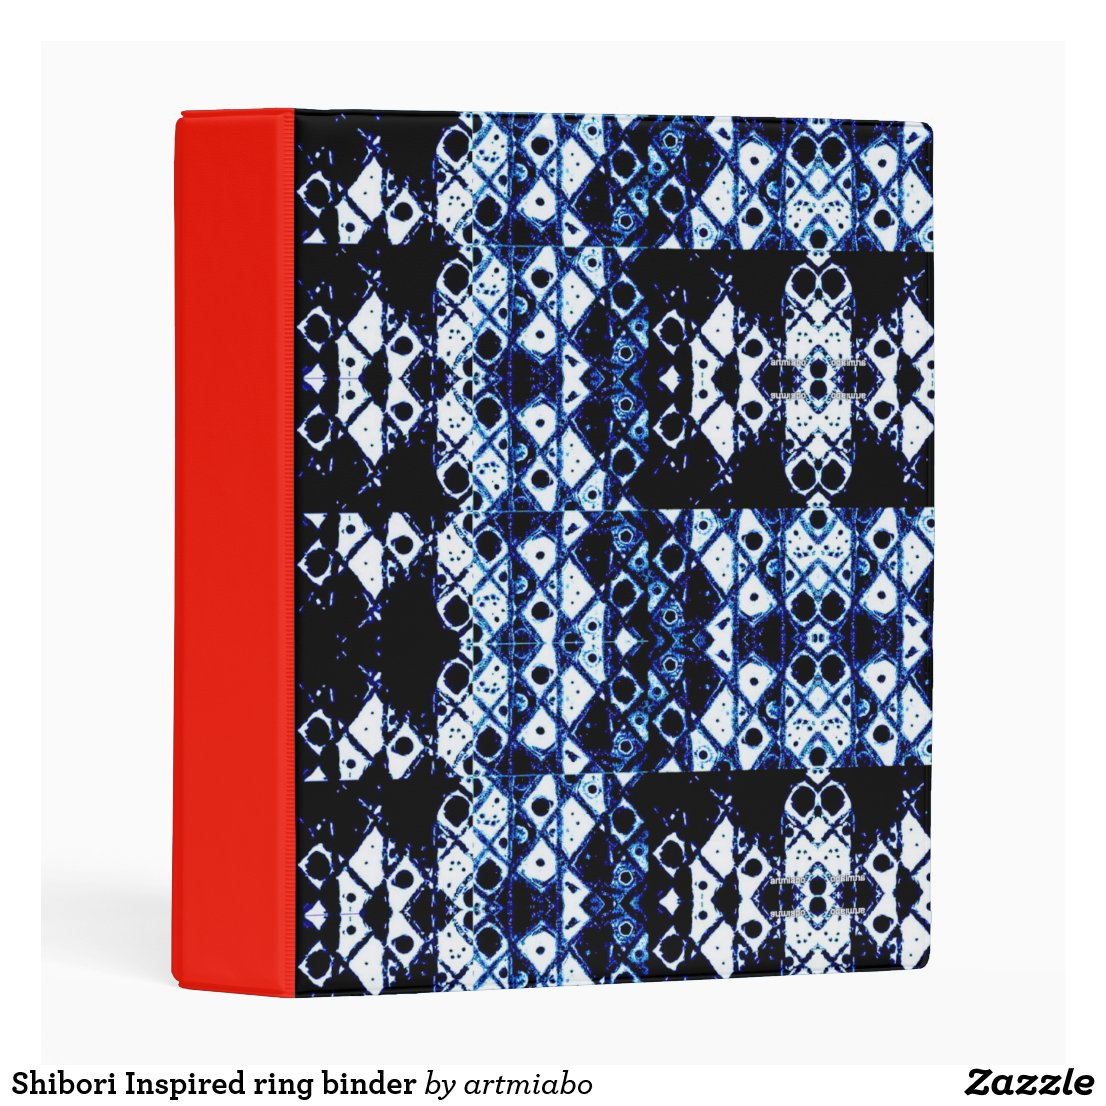 Shibori Inspired ring binder